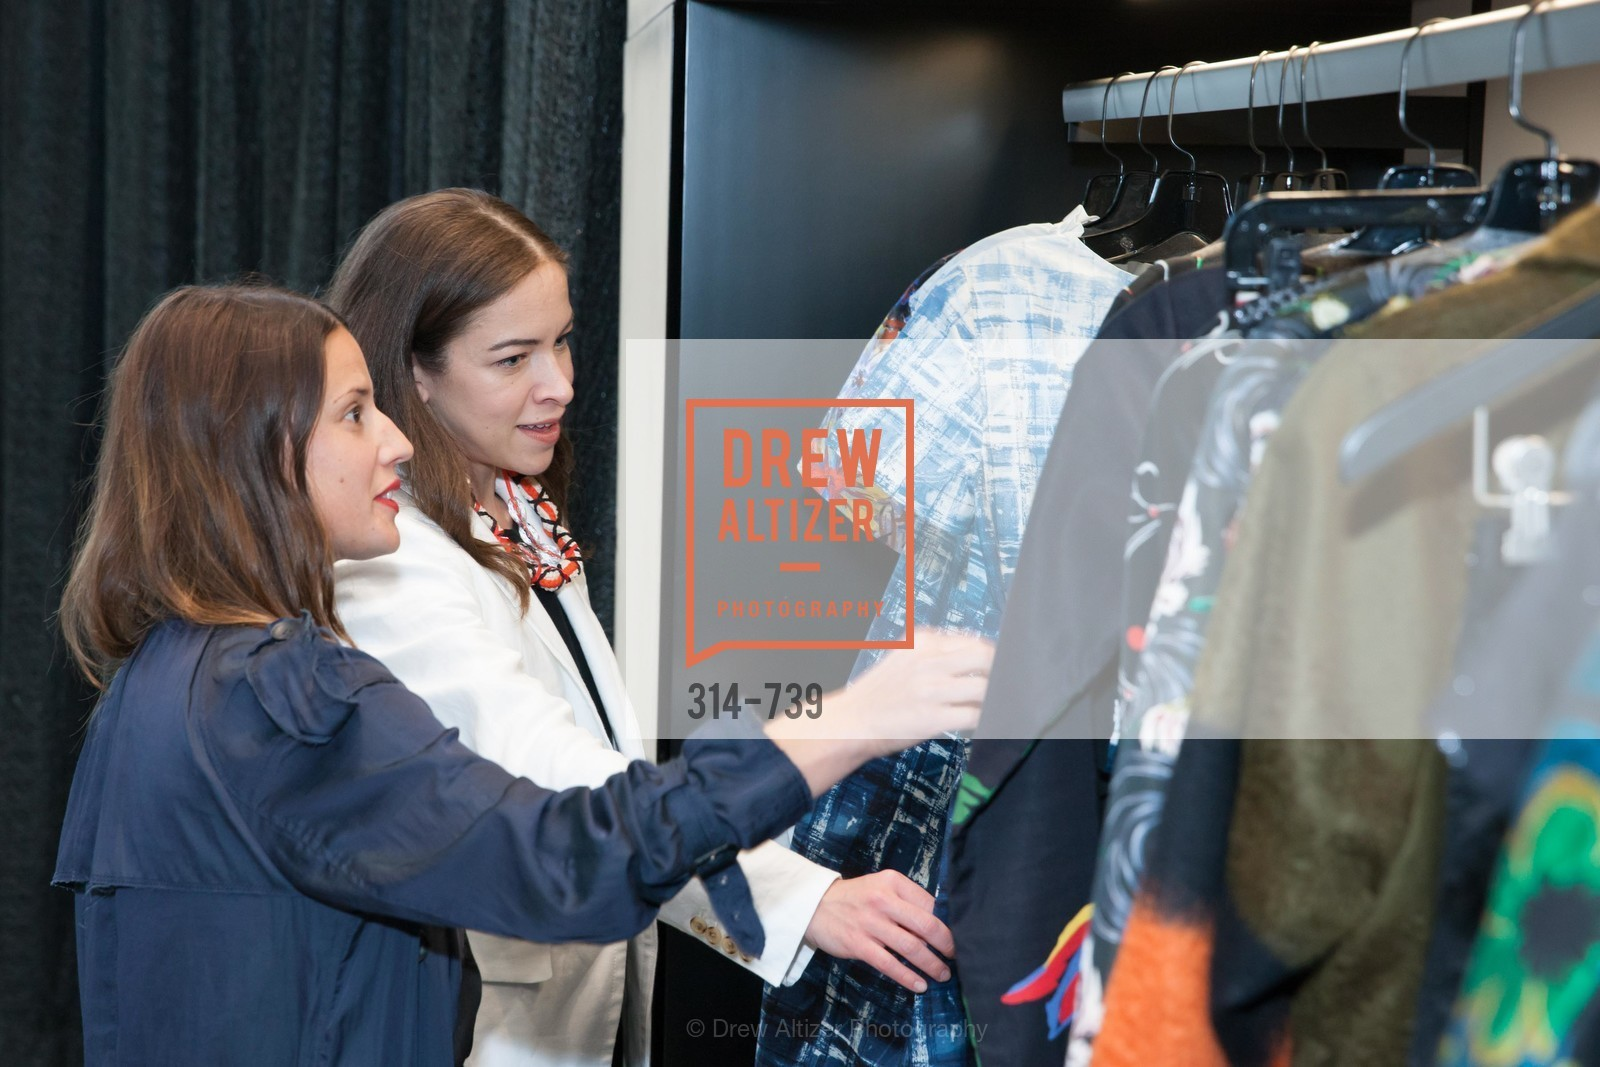 Rachel Walters, Allison Hall, BETTY LIN Store Opening - VIPS, US, May 20th, 2015,Drew Altizer, Drew Altizer Photography, full-service event agency, private events, San Francisco photographer, photographer California